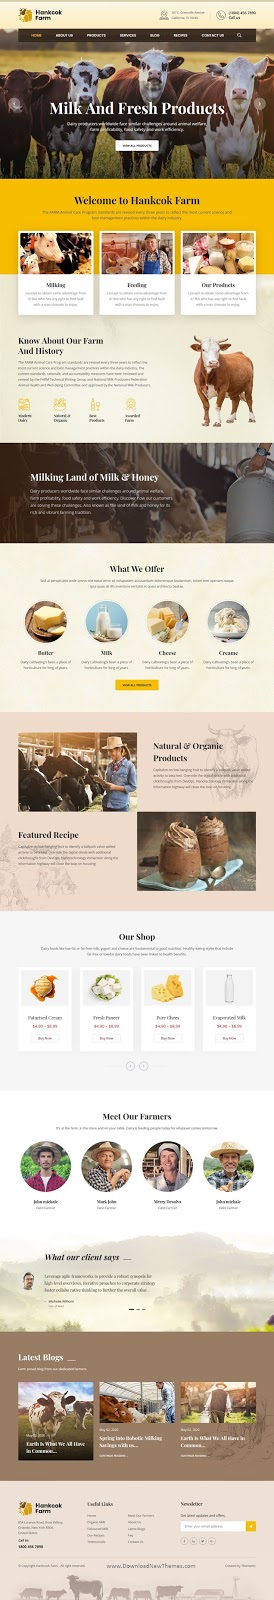 Dairy Farm and Milk Products HTML Template